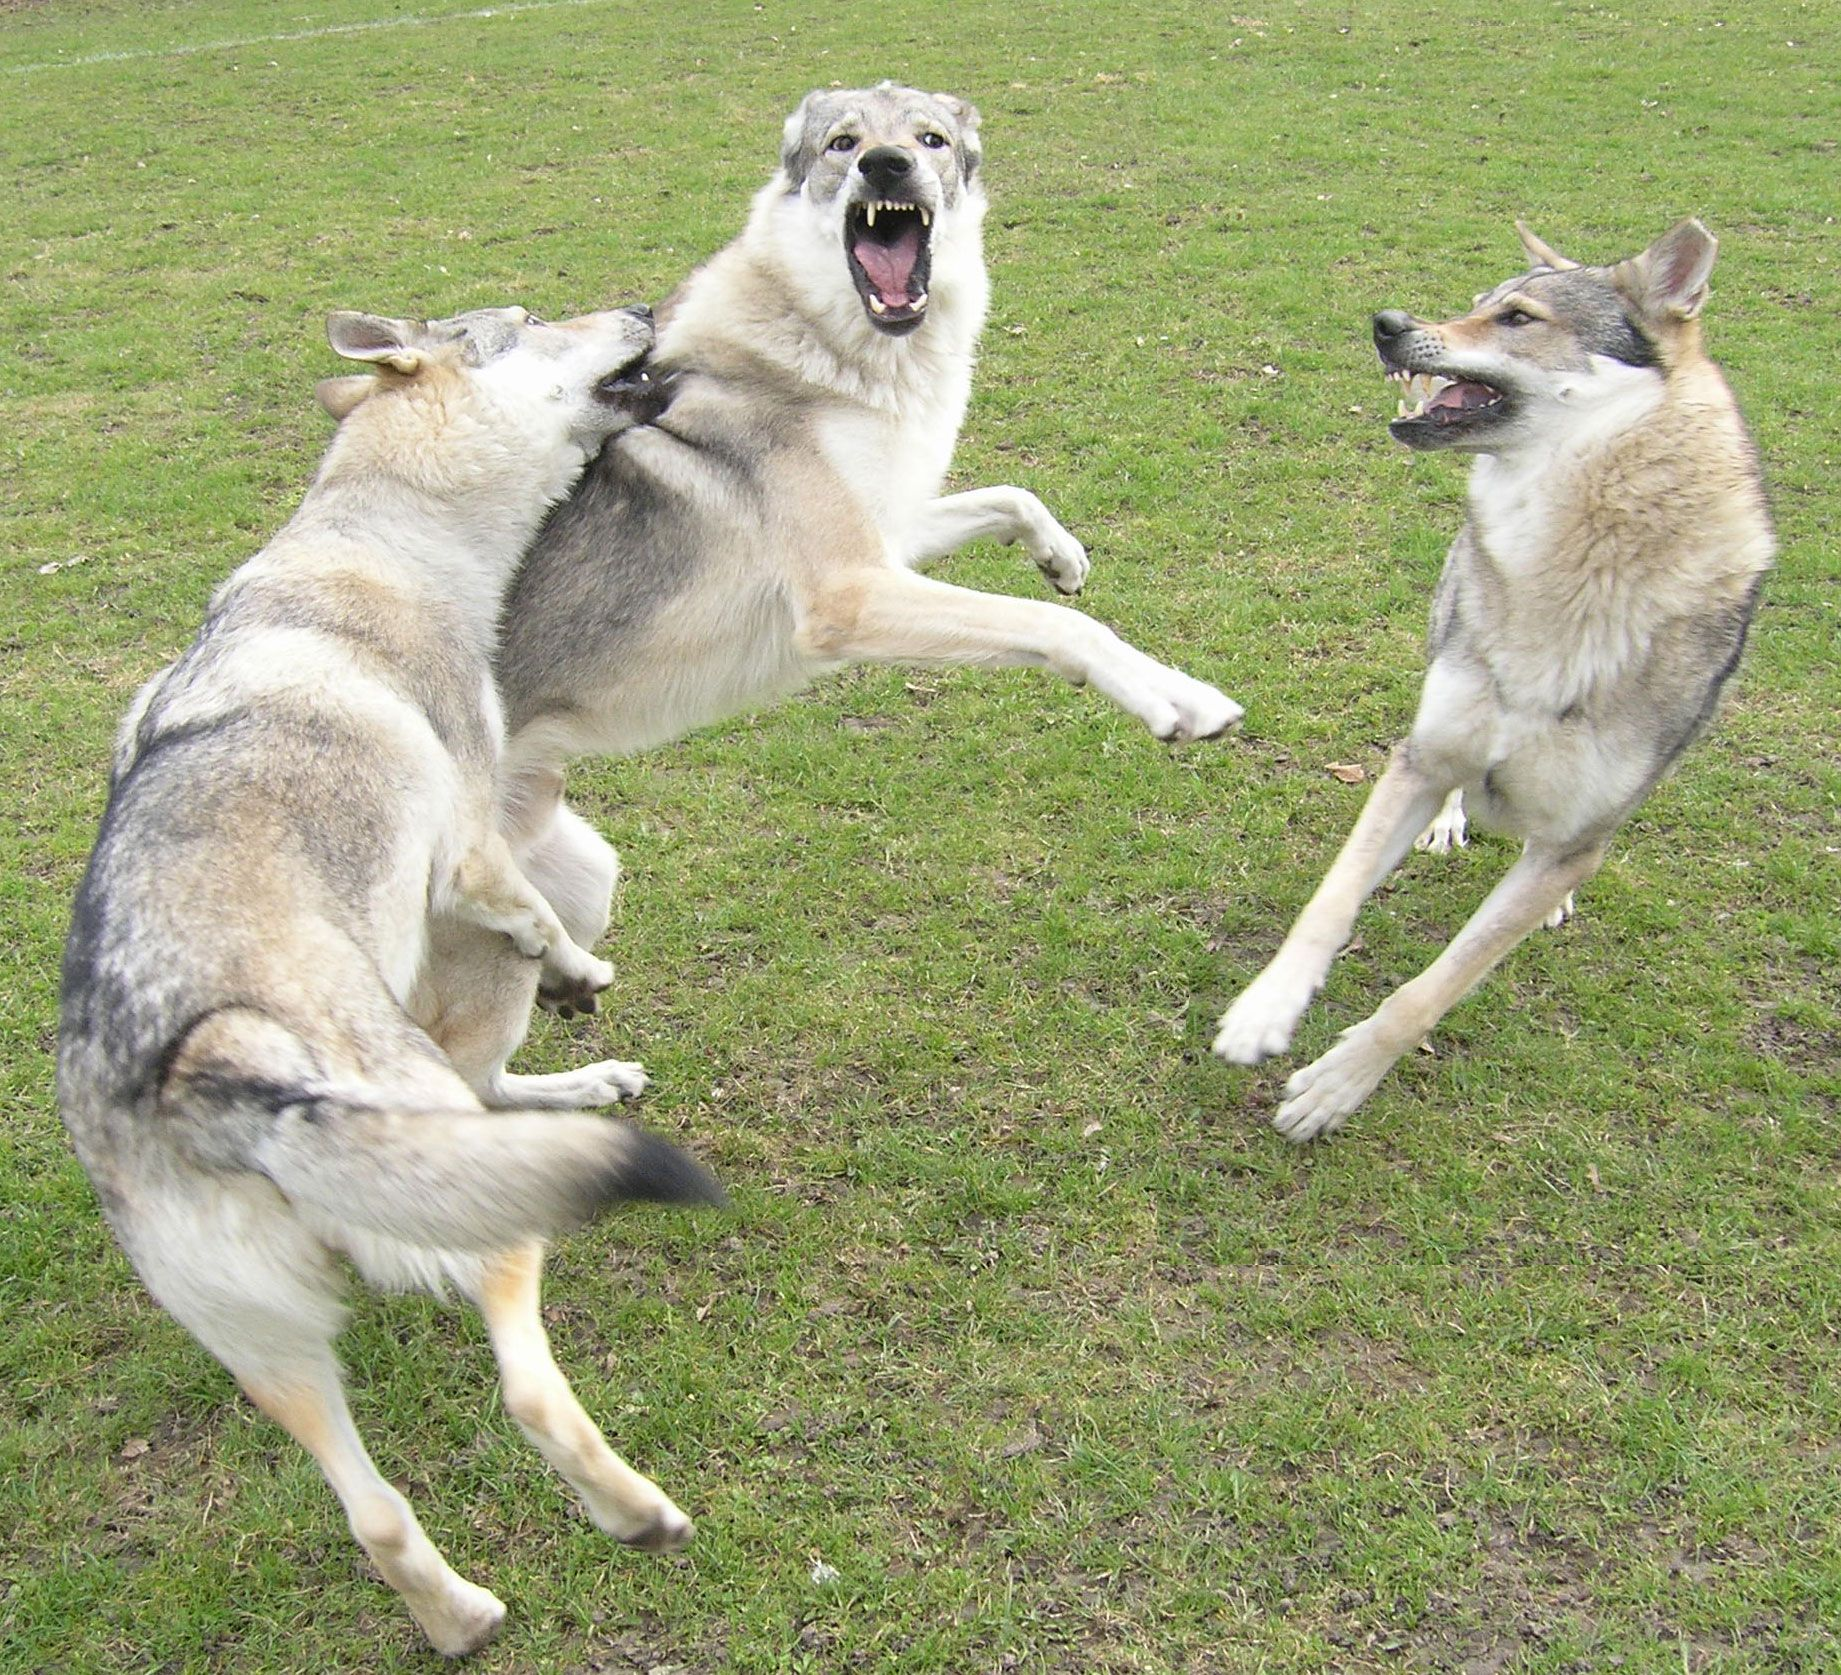 Wolf hybrid puppies for sale in ohio - Wolf Hybrid Puppies For Sale In Ohio 22